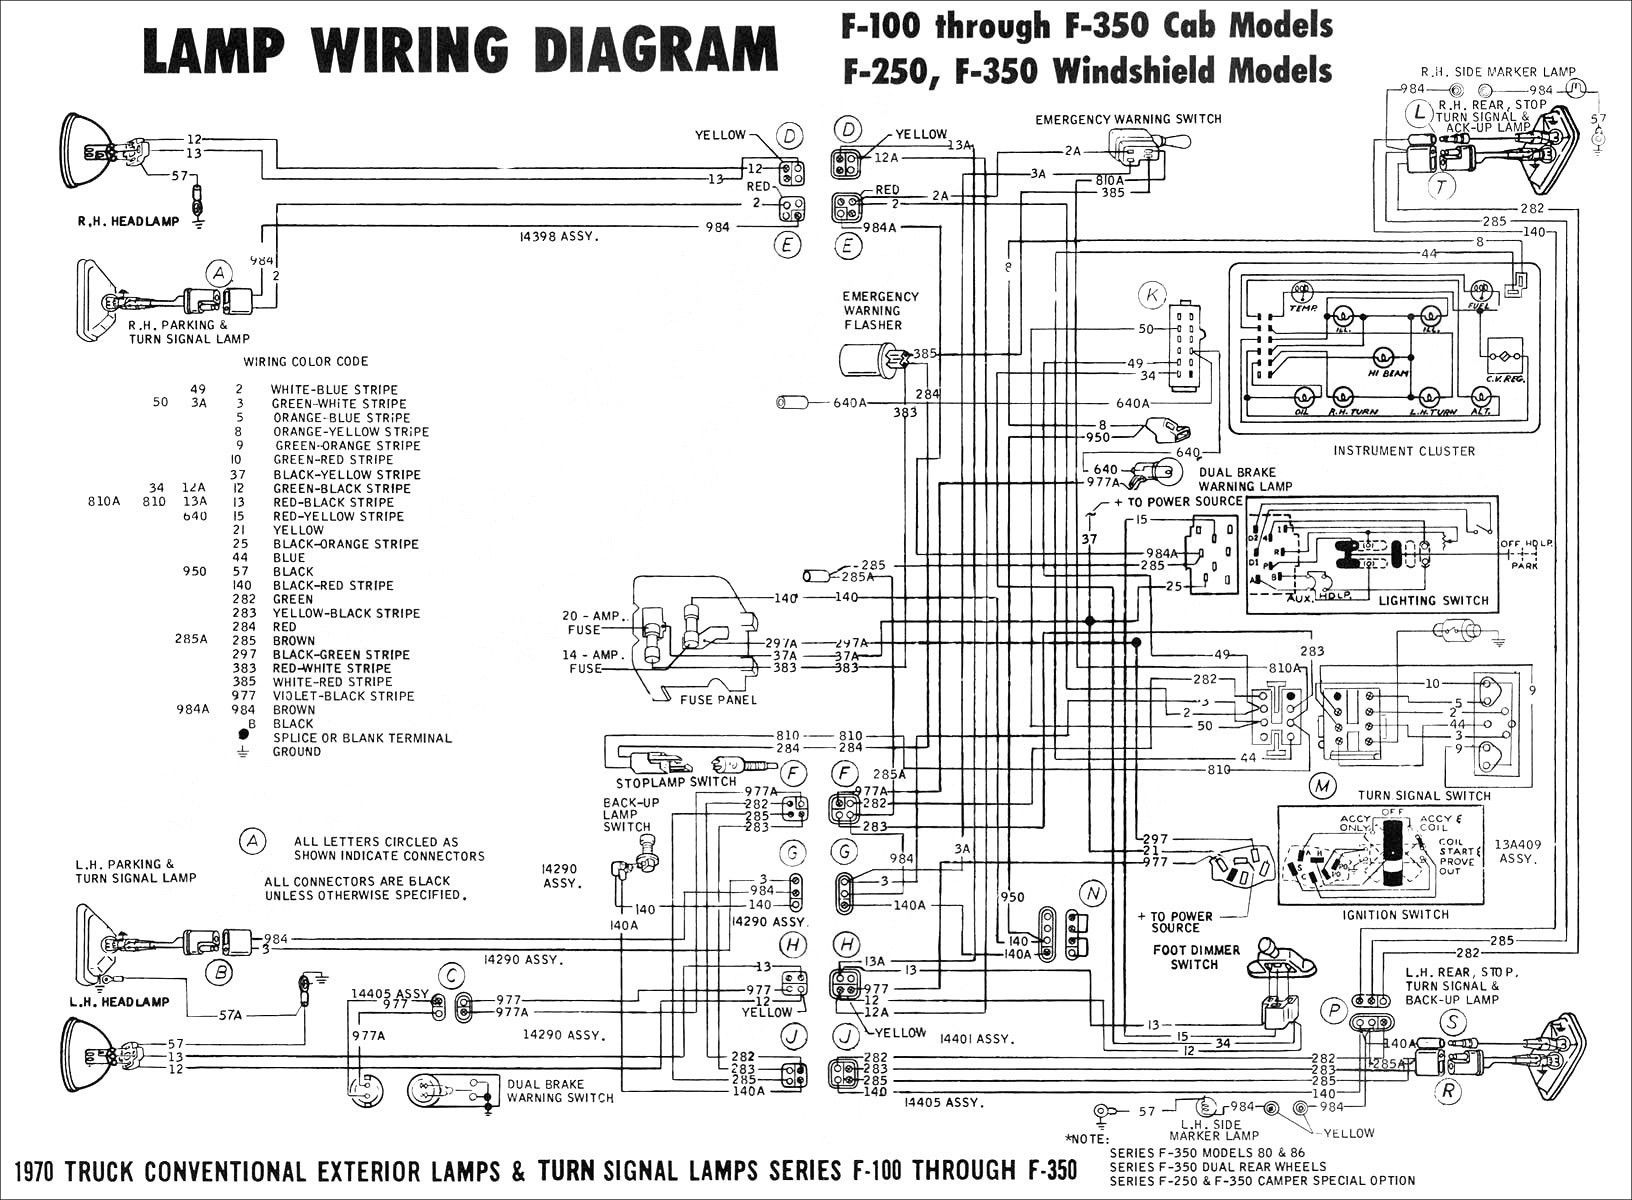 Unique Wiring Schematic For Gibson Les Paul Electrical Wiring Diagram Trailer Wiring Diagram Diagram